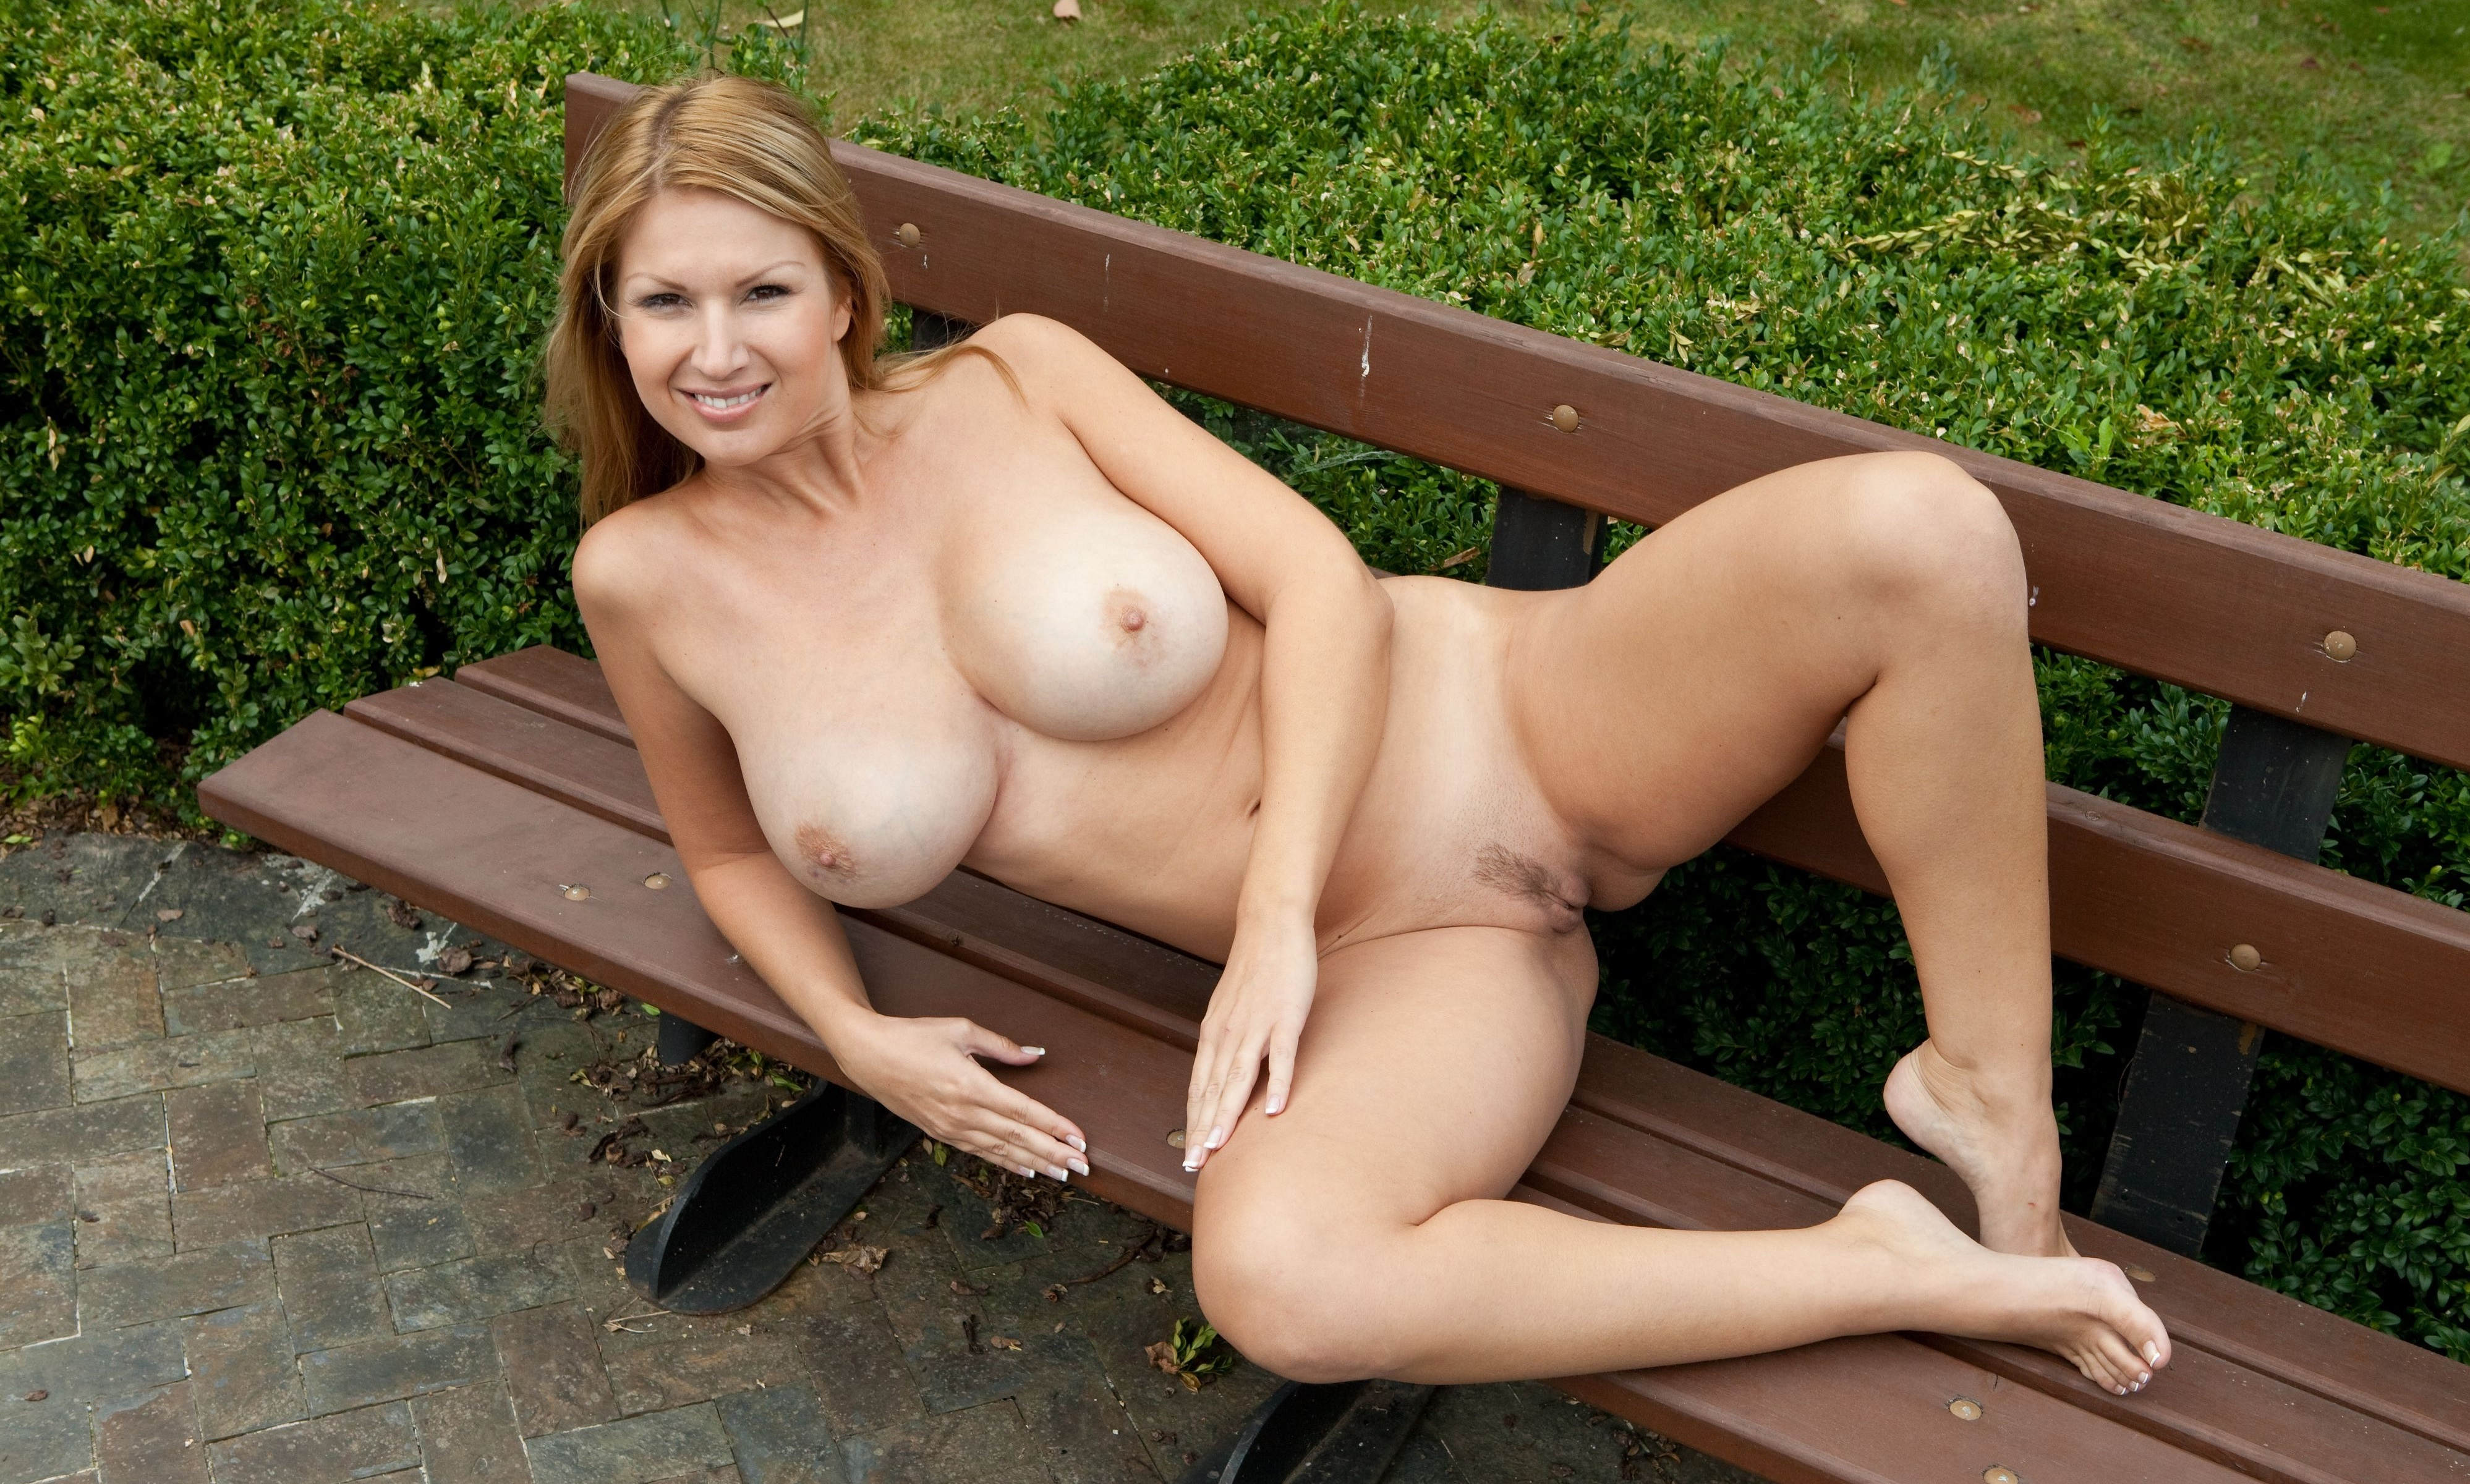 Nude milfs in alley